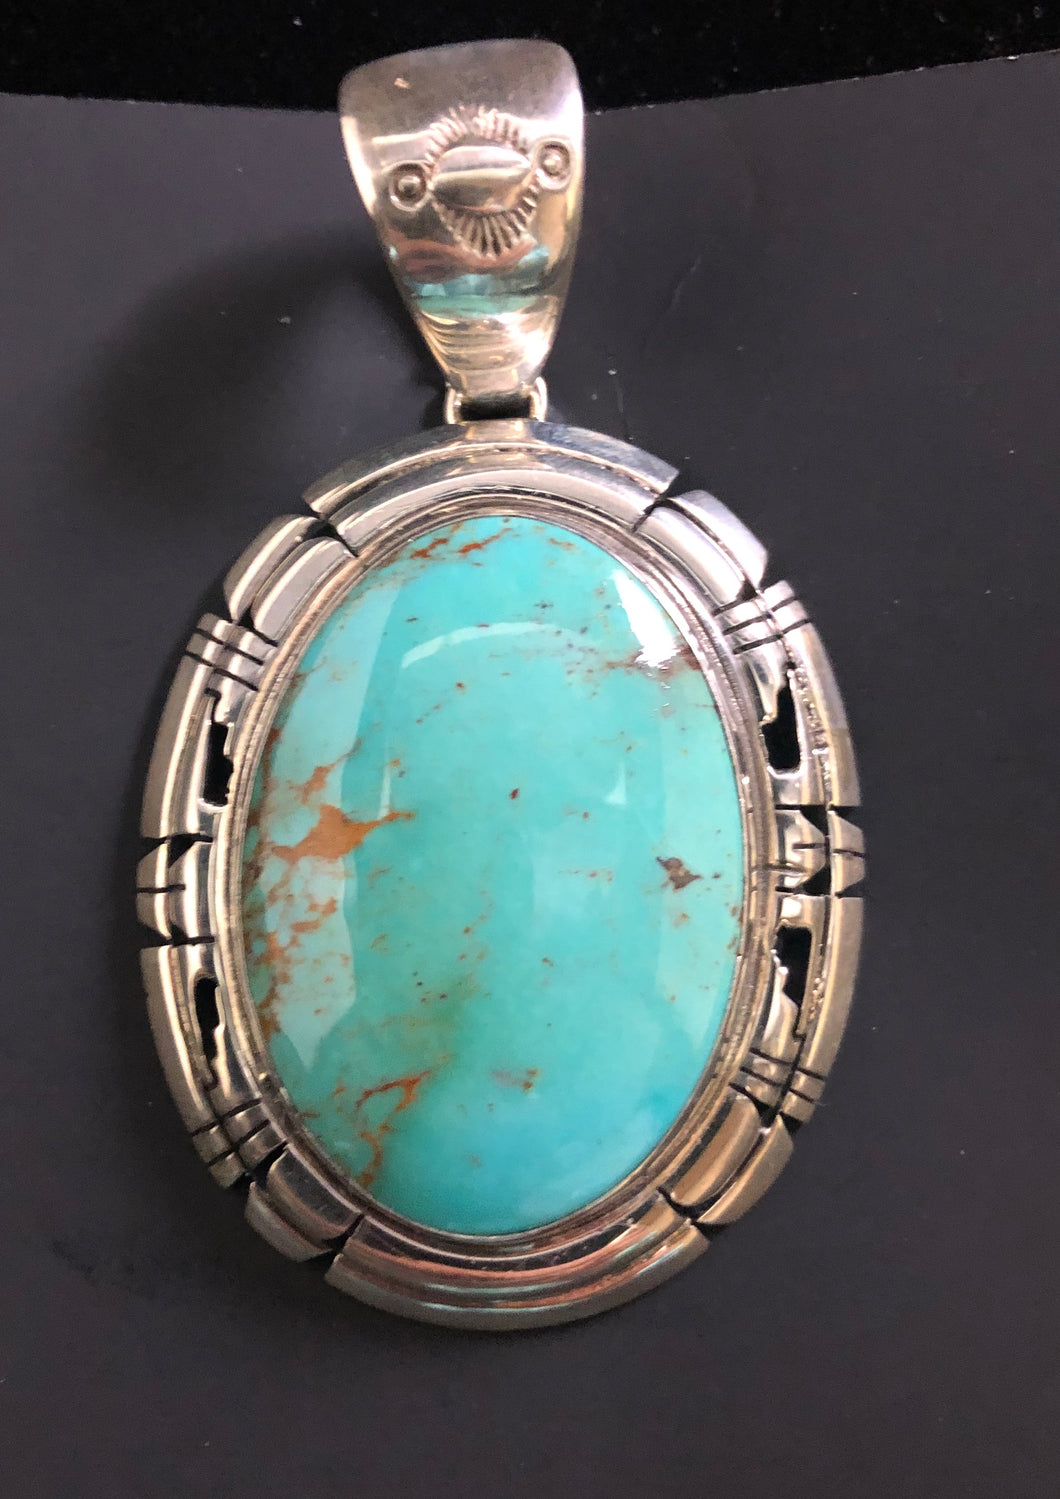 Turquoise with matrix sterling silver pendant